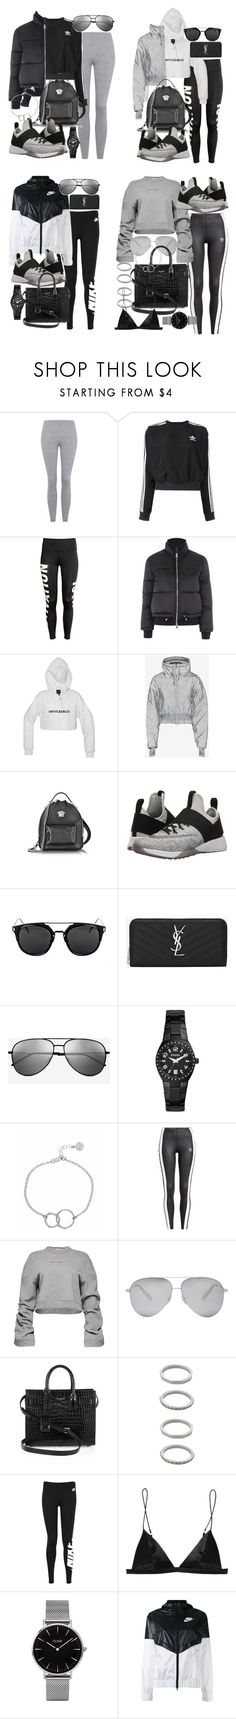 """""""Nike Air Zoom Strong"""" by florencia95 ❤ liked on Polyvore featuring Topshop, adidas, Versace, NIKE, Yves Saint Laurent, FOSSIL, Chupi, adidas Originals, Magda Butrym and Victoria Beckham"""